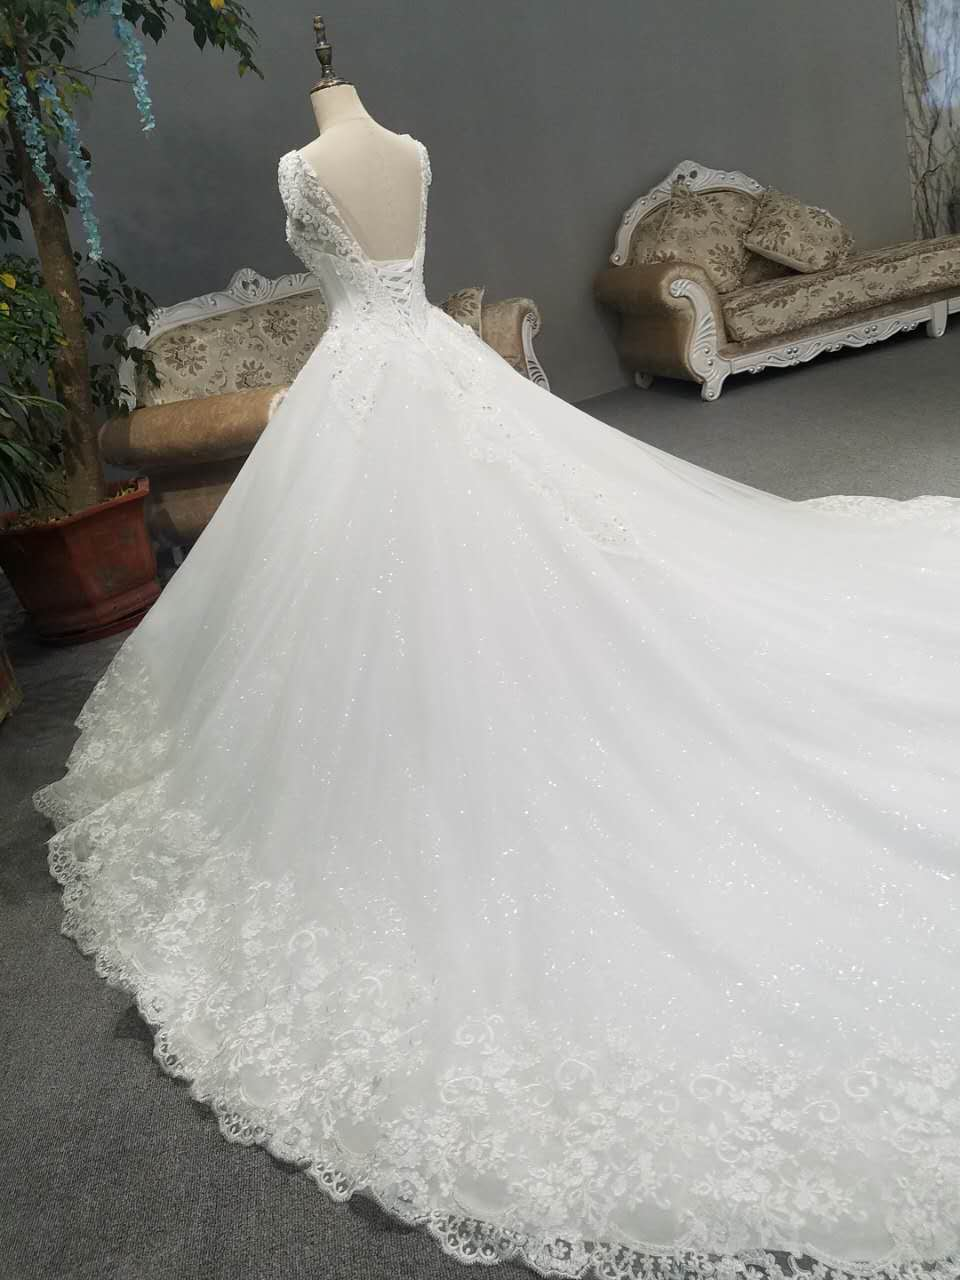 Beijing store leasing lace t-back tail wedding dress rental 2017 new style wedding dress rentals